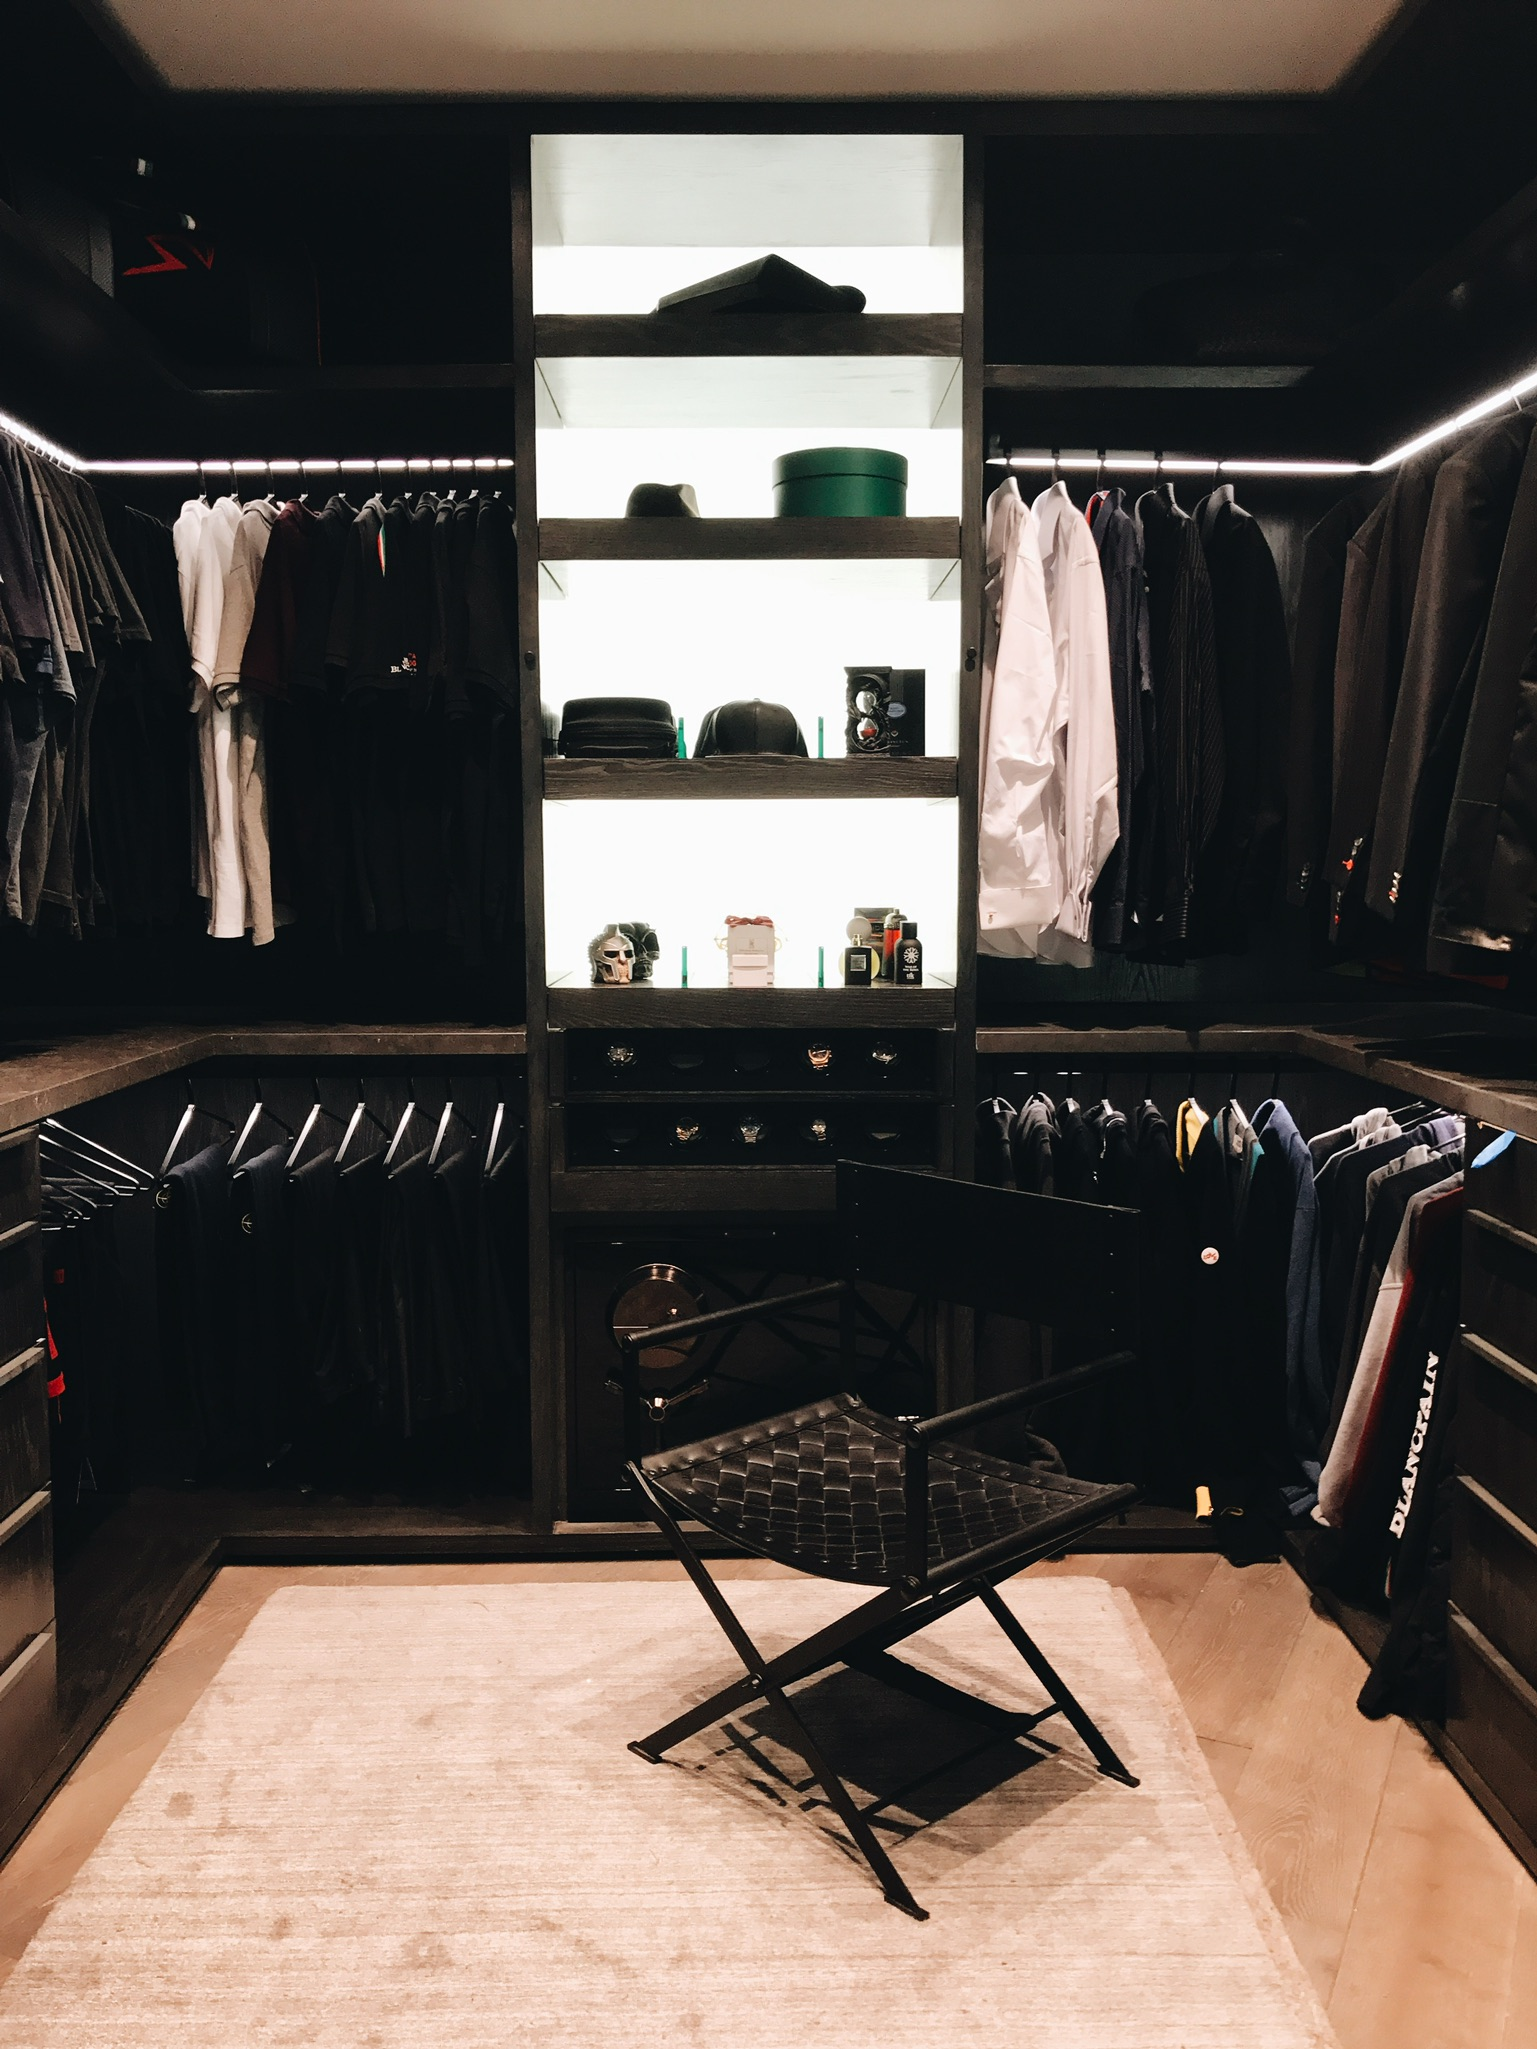 Safes  -- Safes in closets aren't new; but they've really evolved in terms OF design and technology (hello, biometric entry). Now, you can store your pricey pieces in stylish, state-of-the-art safes that blend seamlessly into your dressing room. (Courtesy of brown safe)